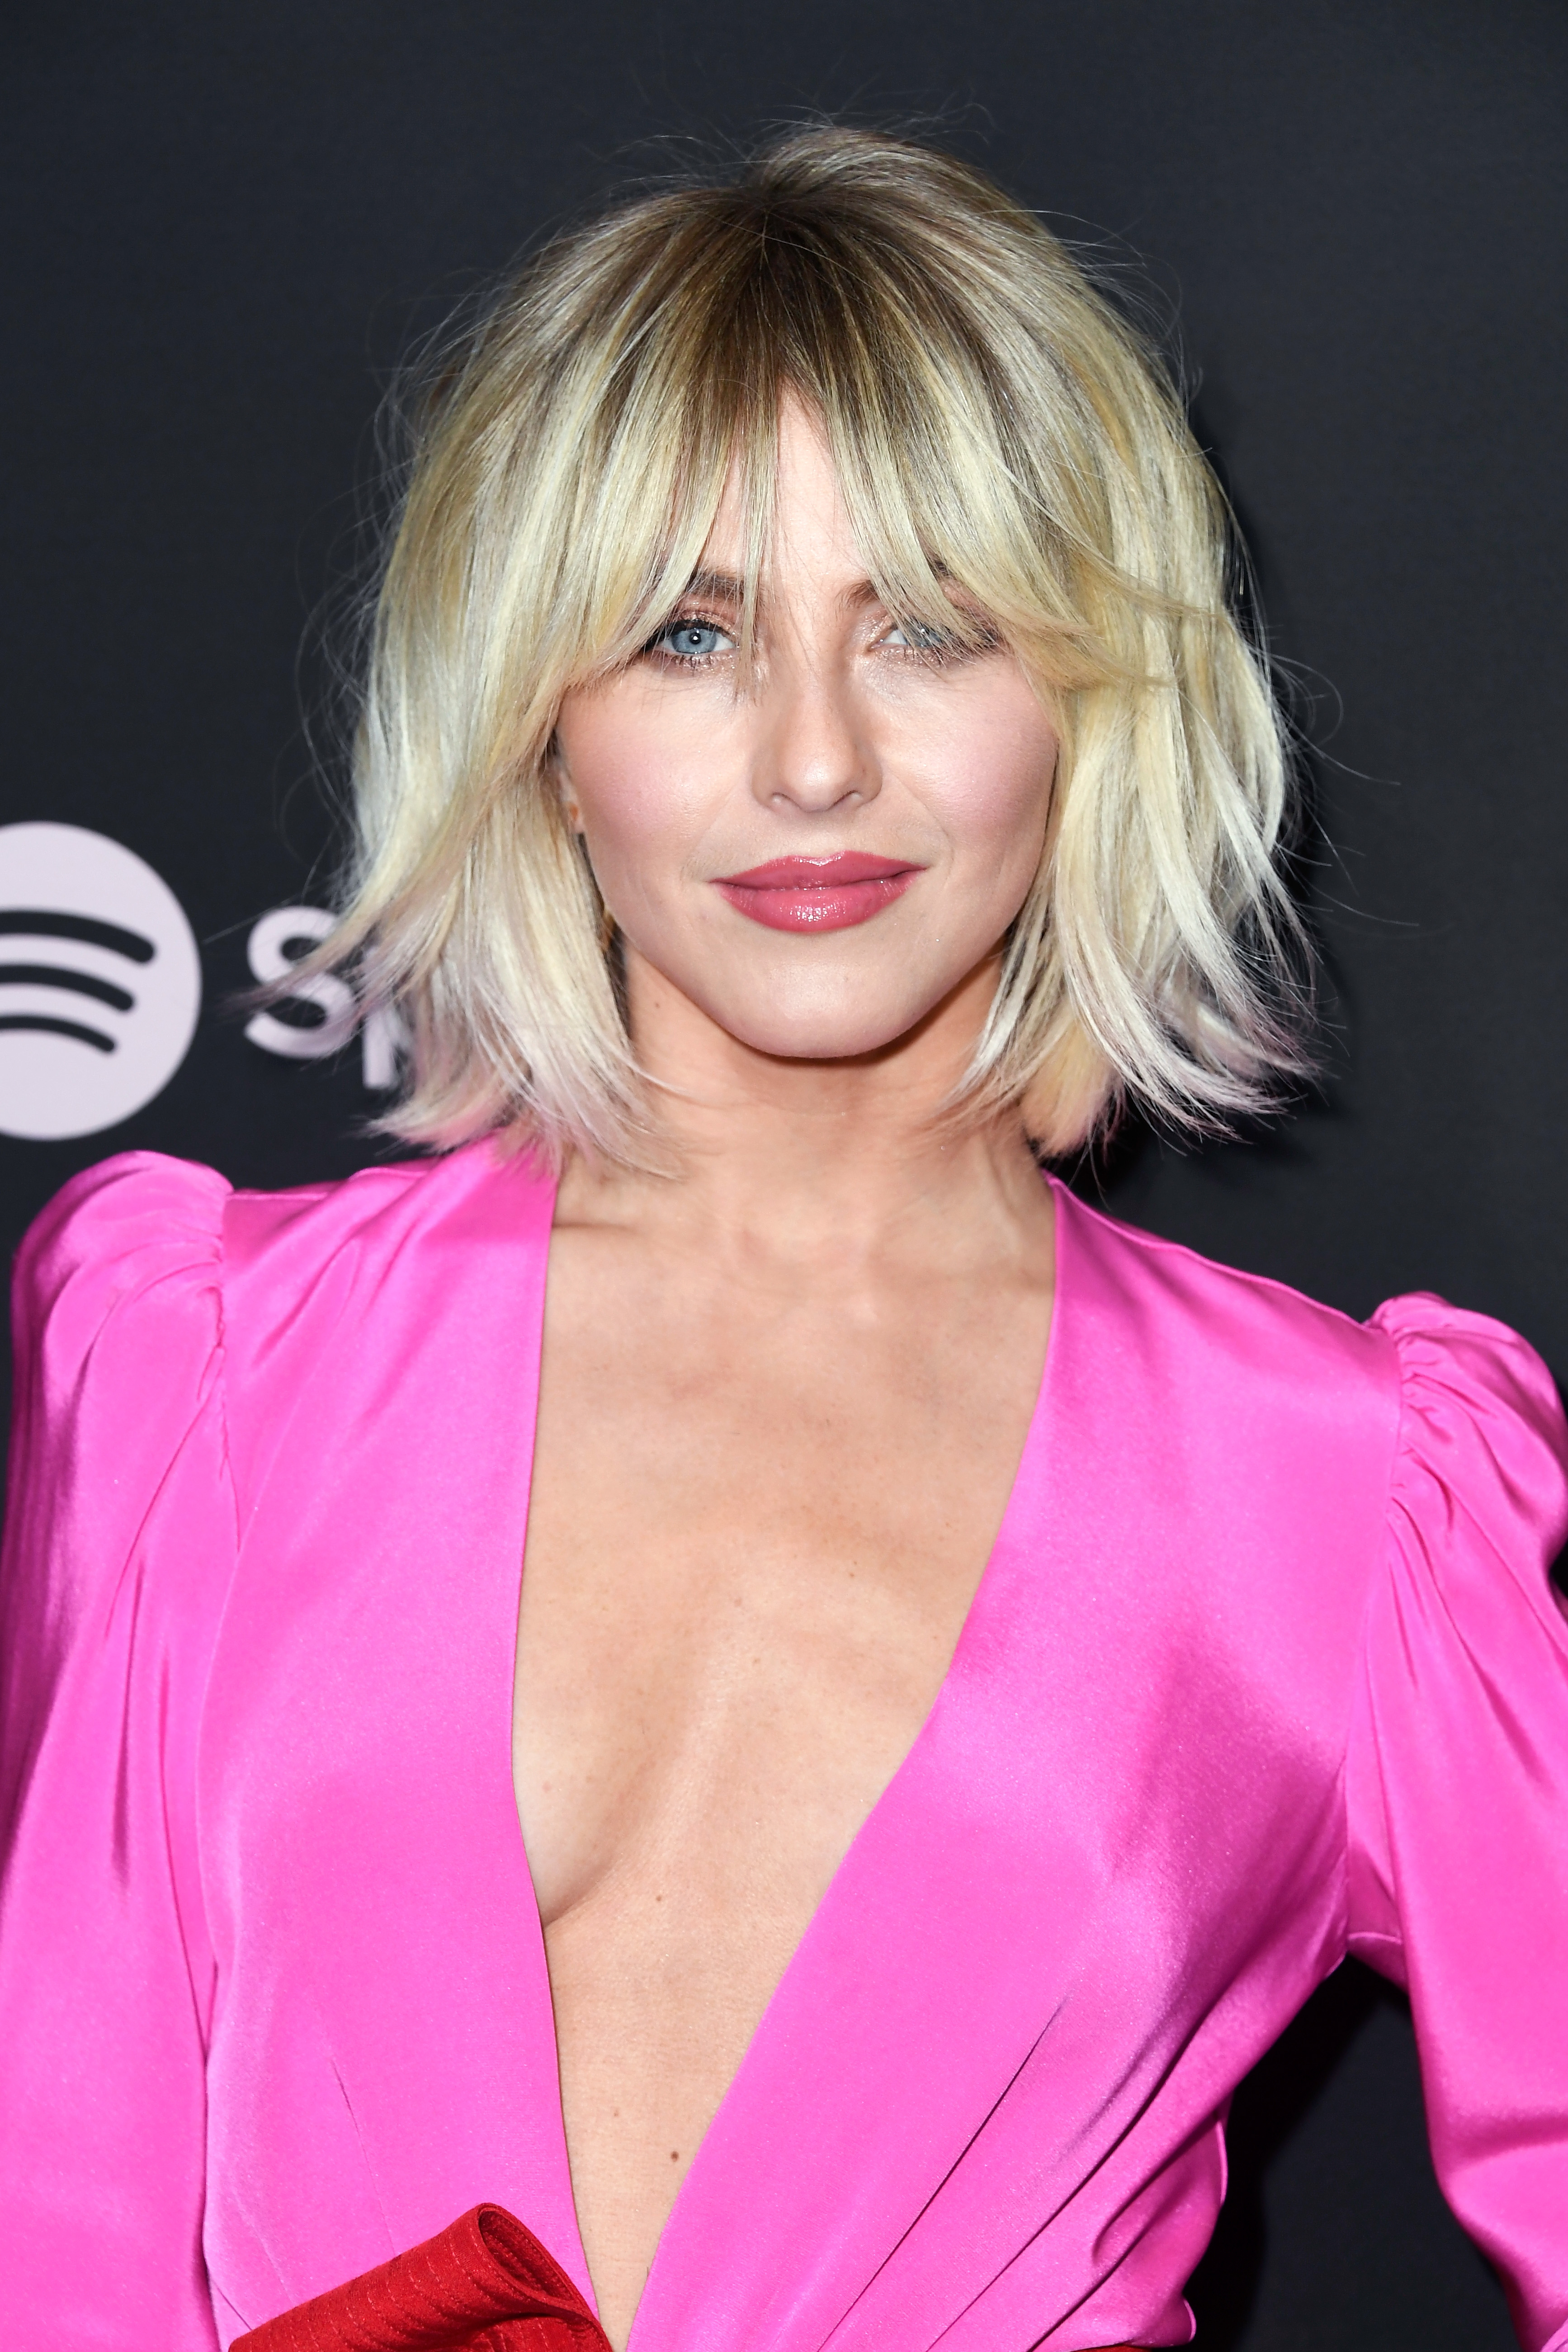 The Top 10 Sexiest Haircuts for Spring